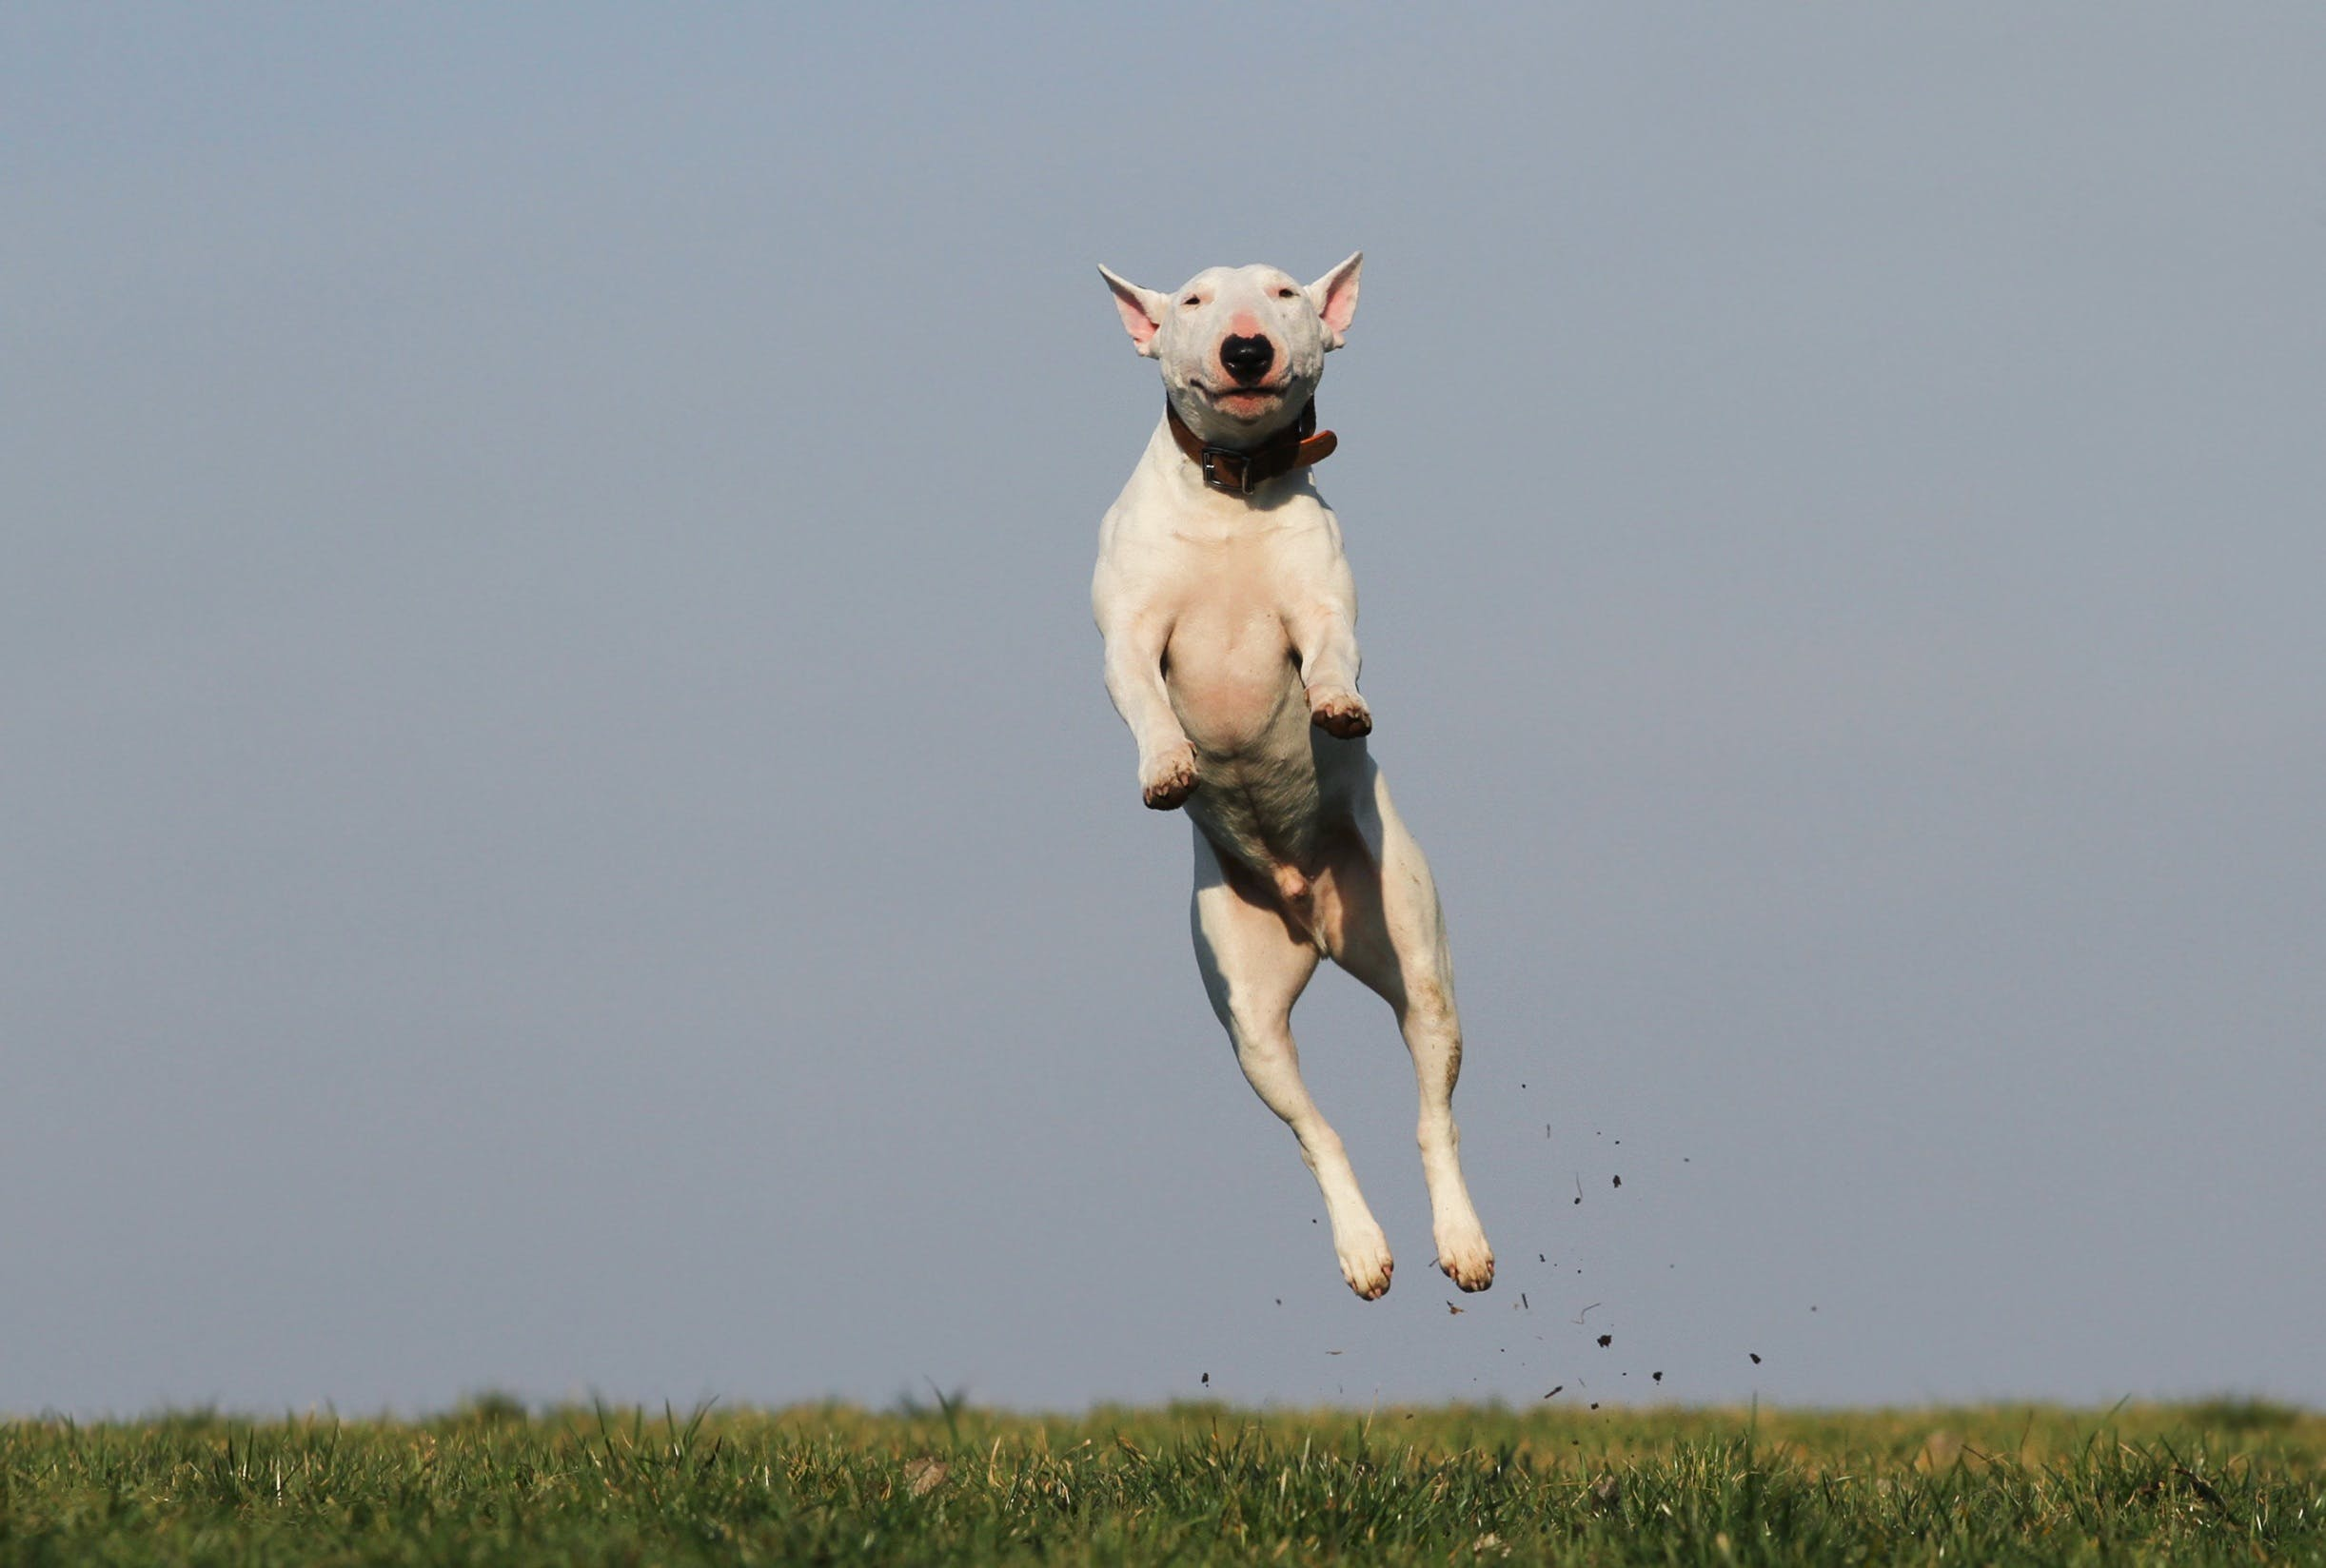 White Dog Terrier Jumping Near Grass Field during Daytime